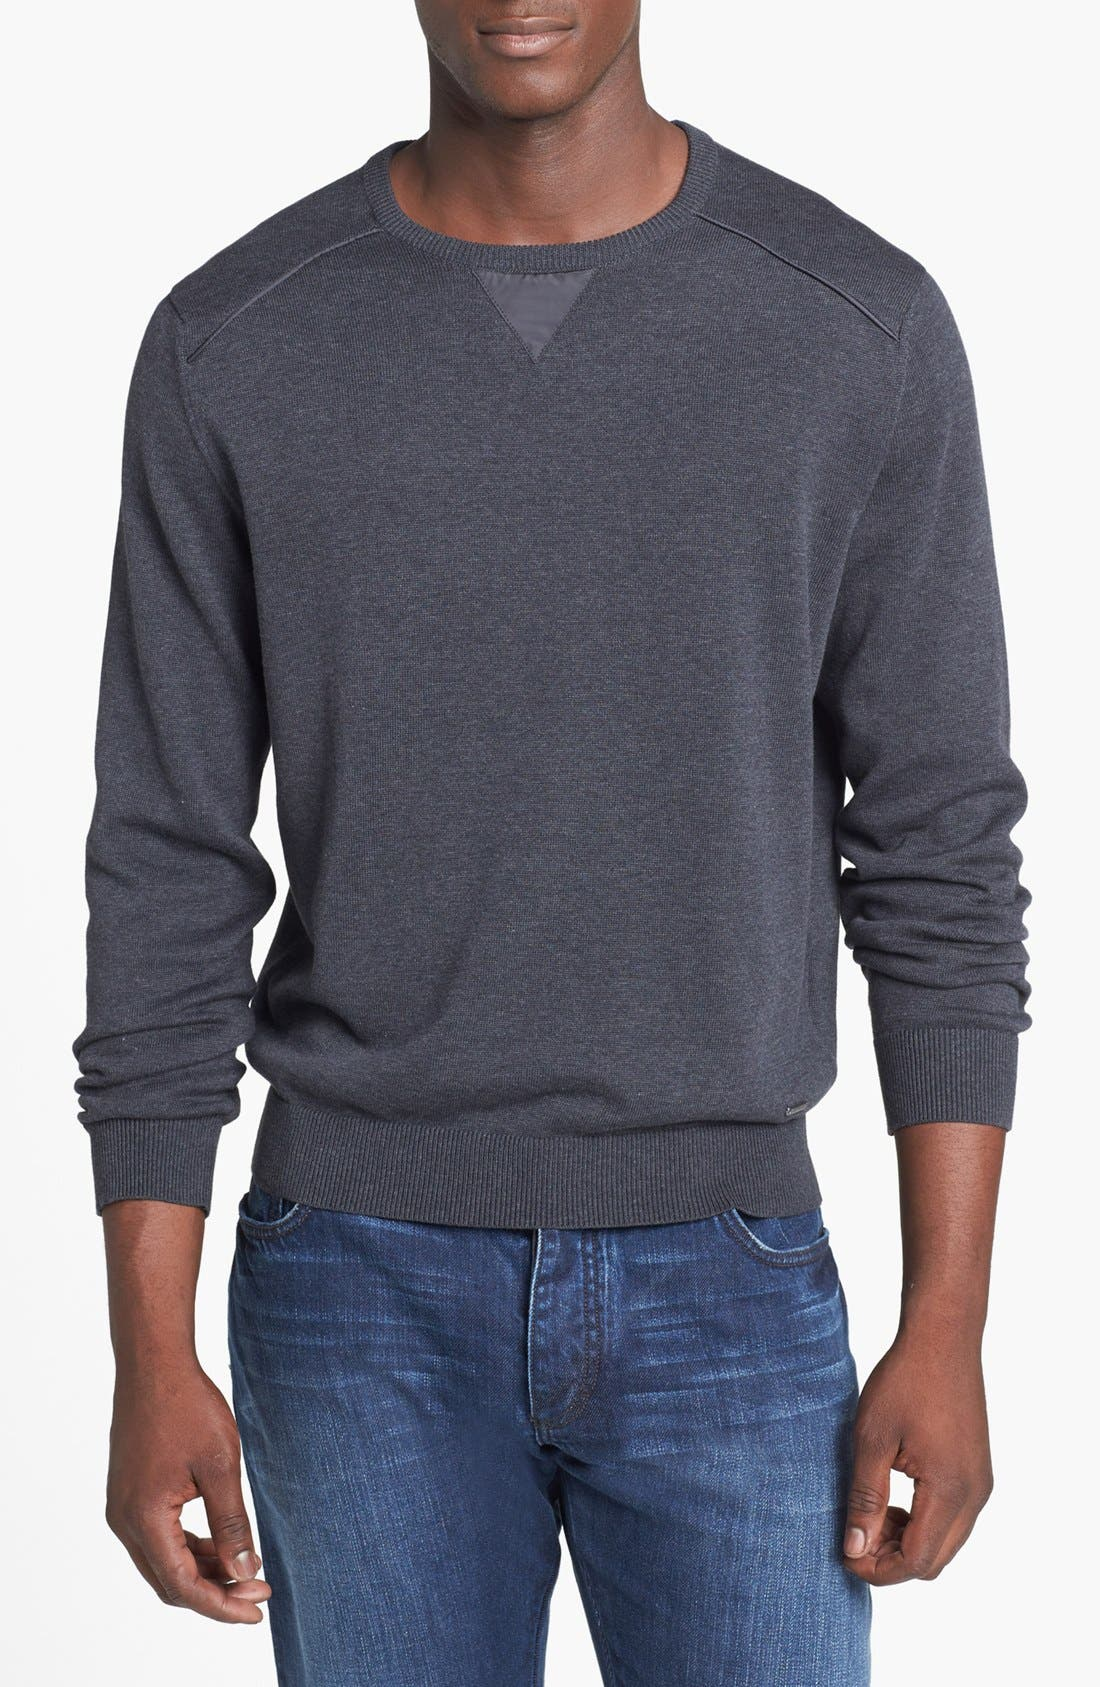 Alternate Image 1 Selected - Zegna Sport Water Repellent Crew Neck Sweater